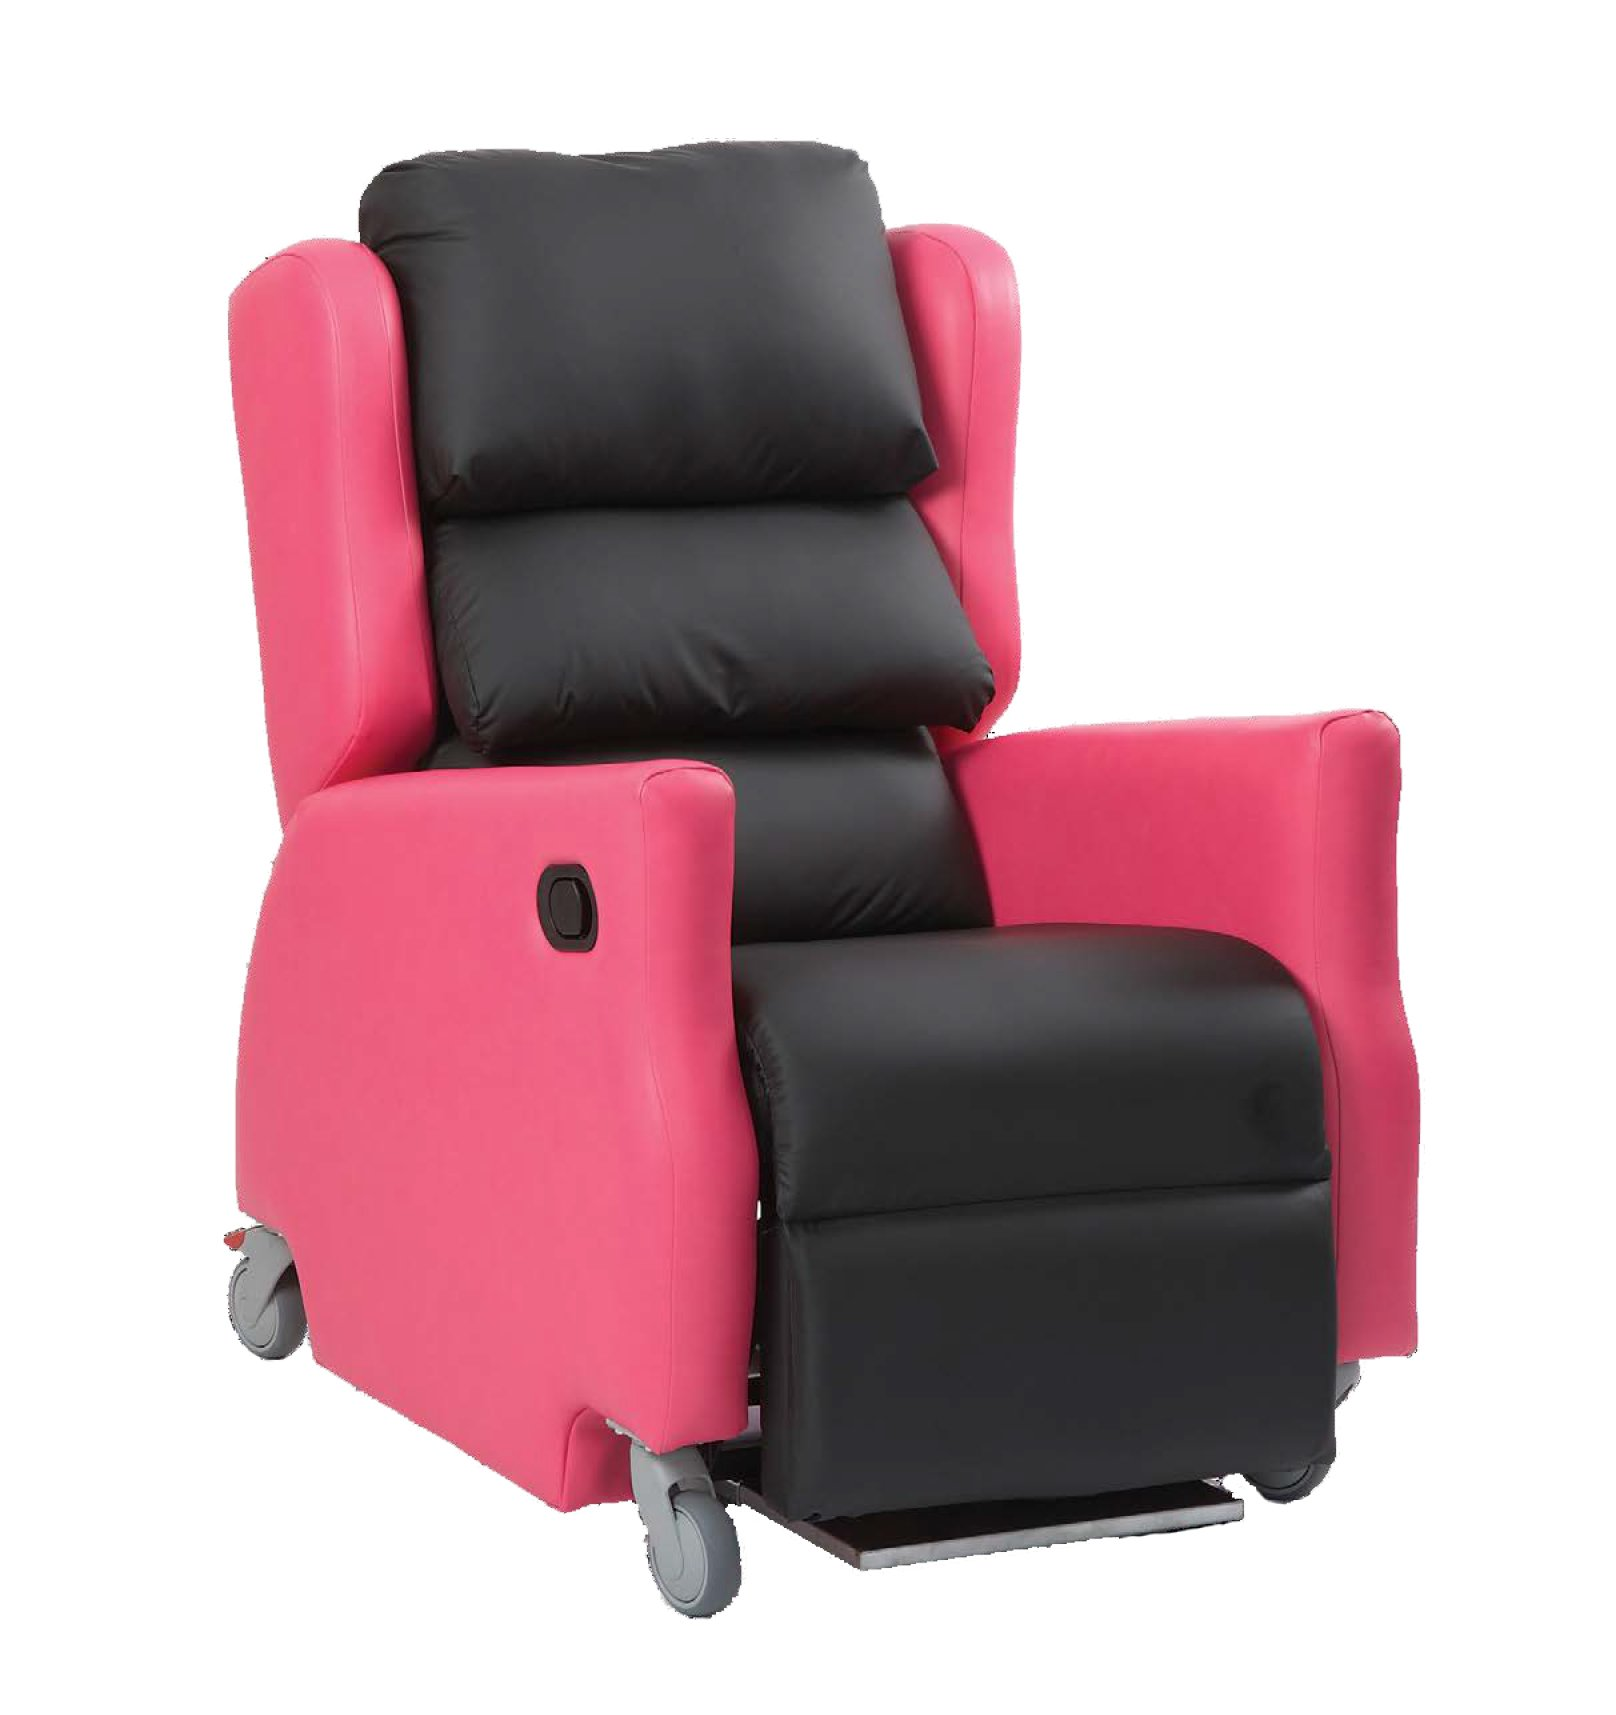 The Flexi Porter is an ideal chair for someone with dementia